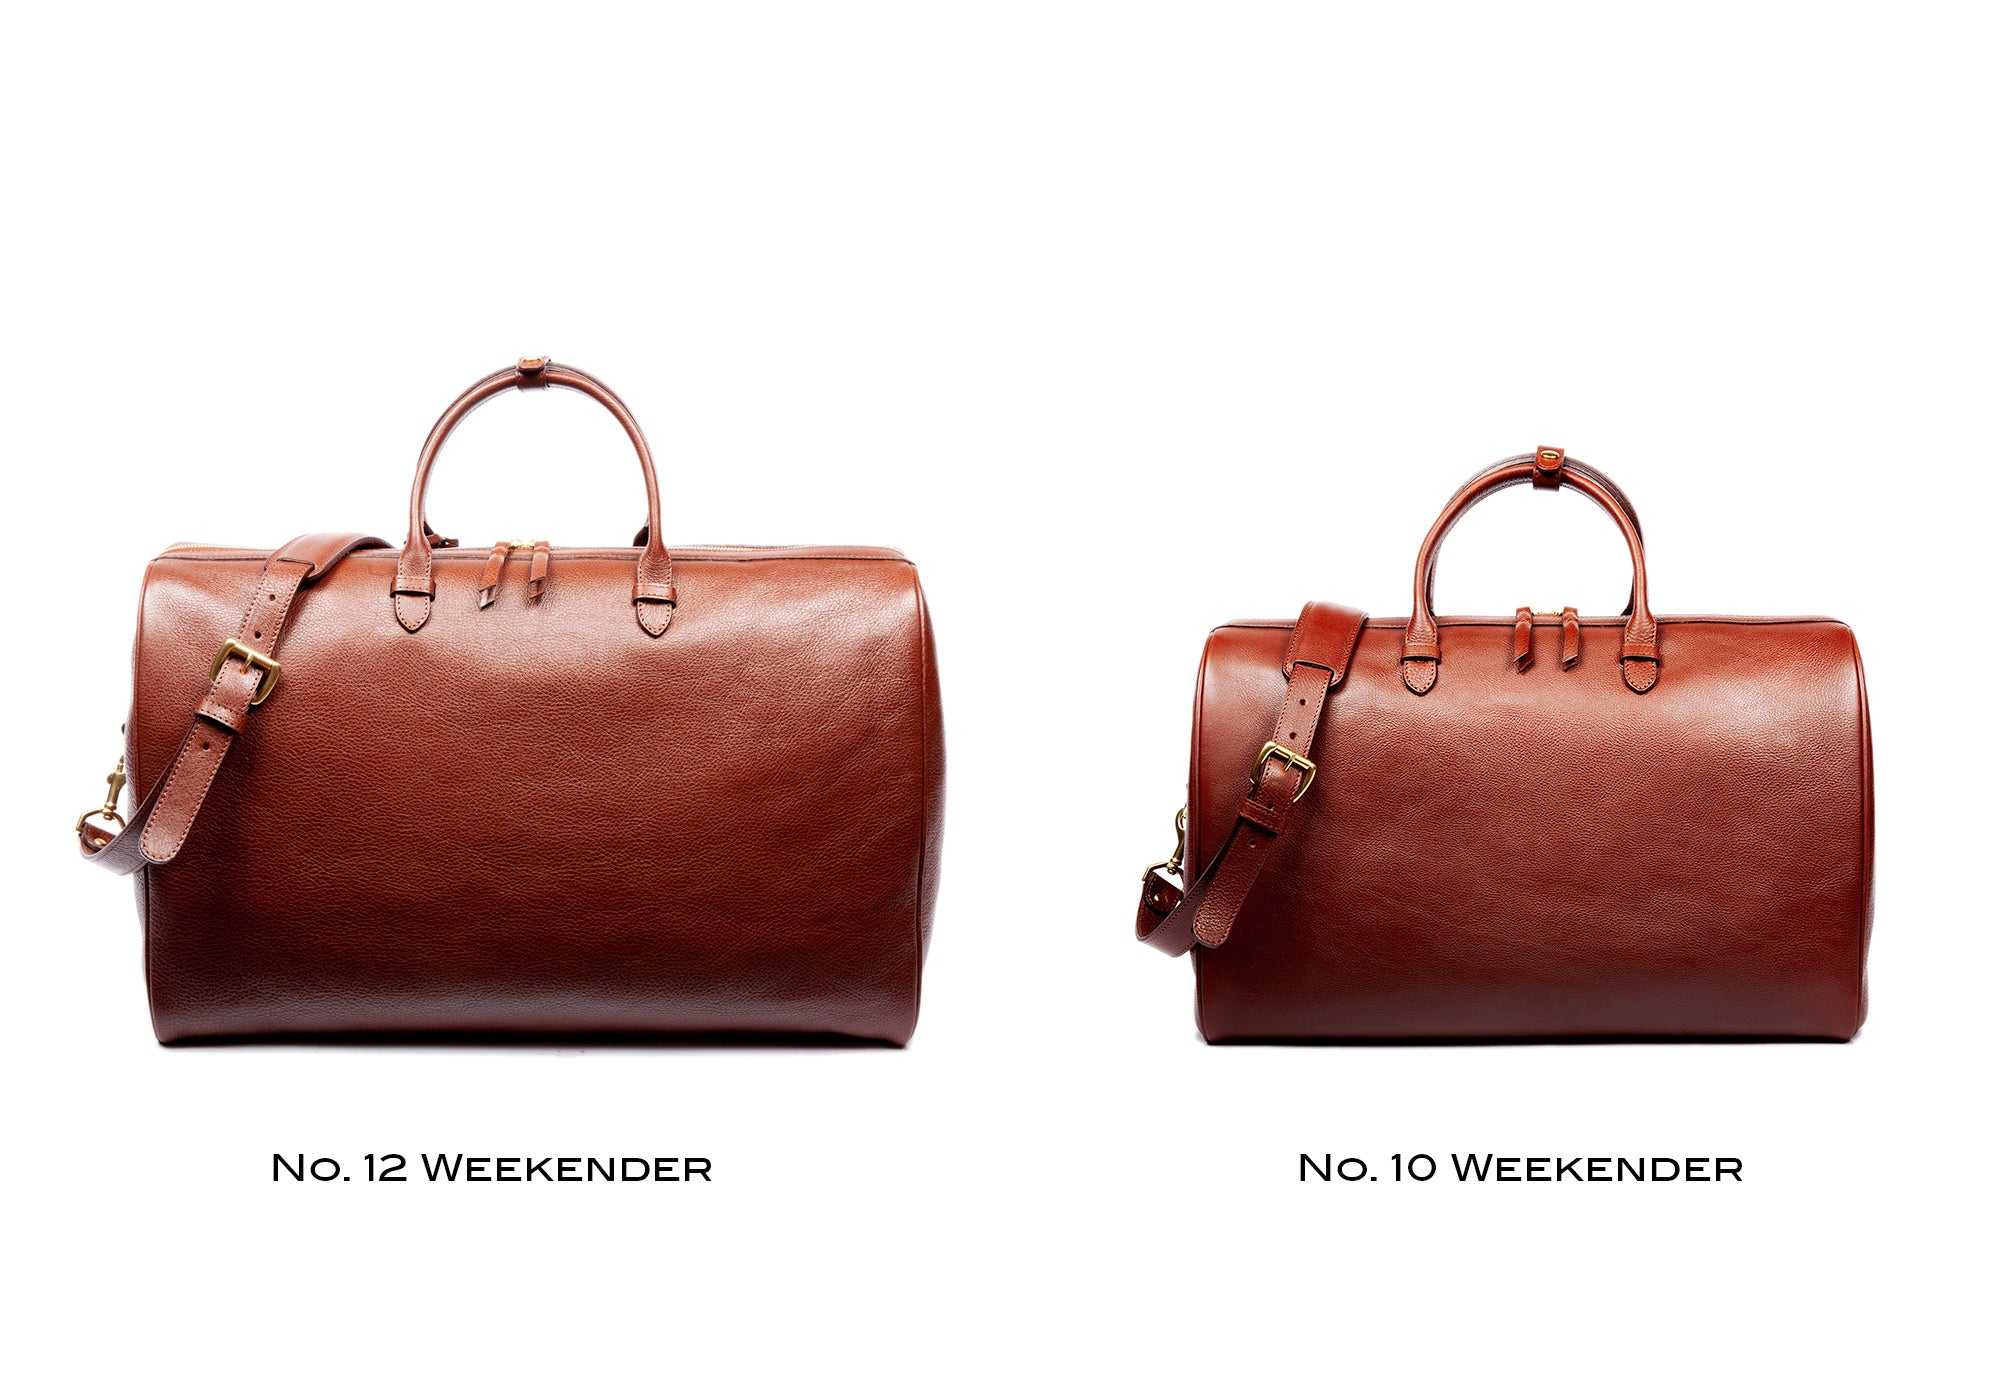 No. 12 Weekender Bag Lifestyle